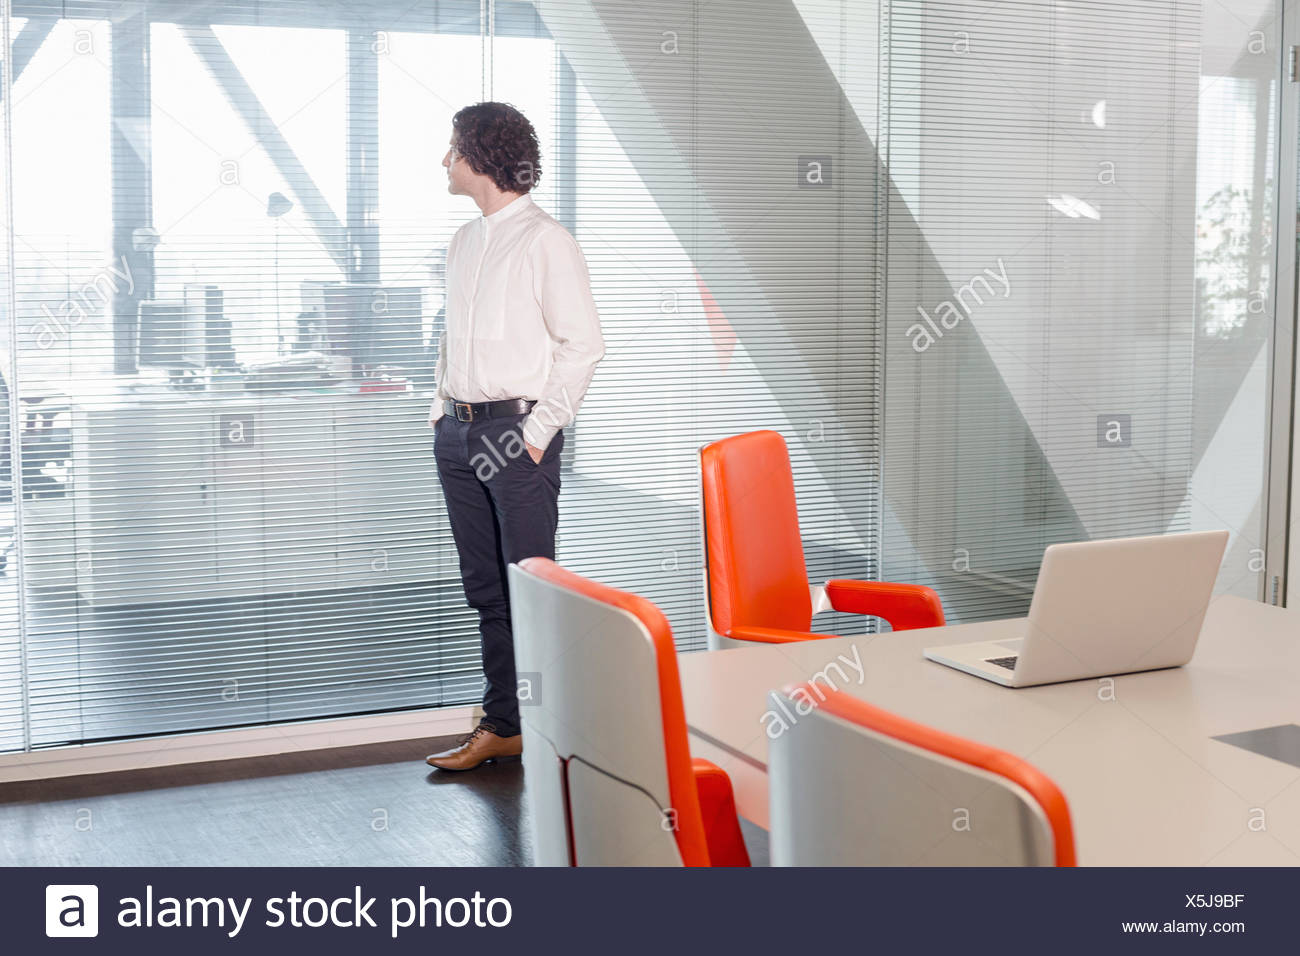 Mature man looking through window - Stock Image